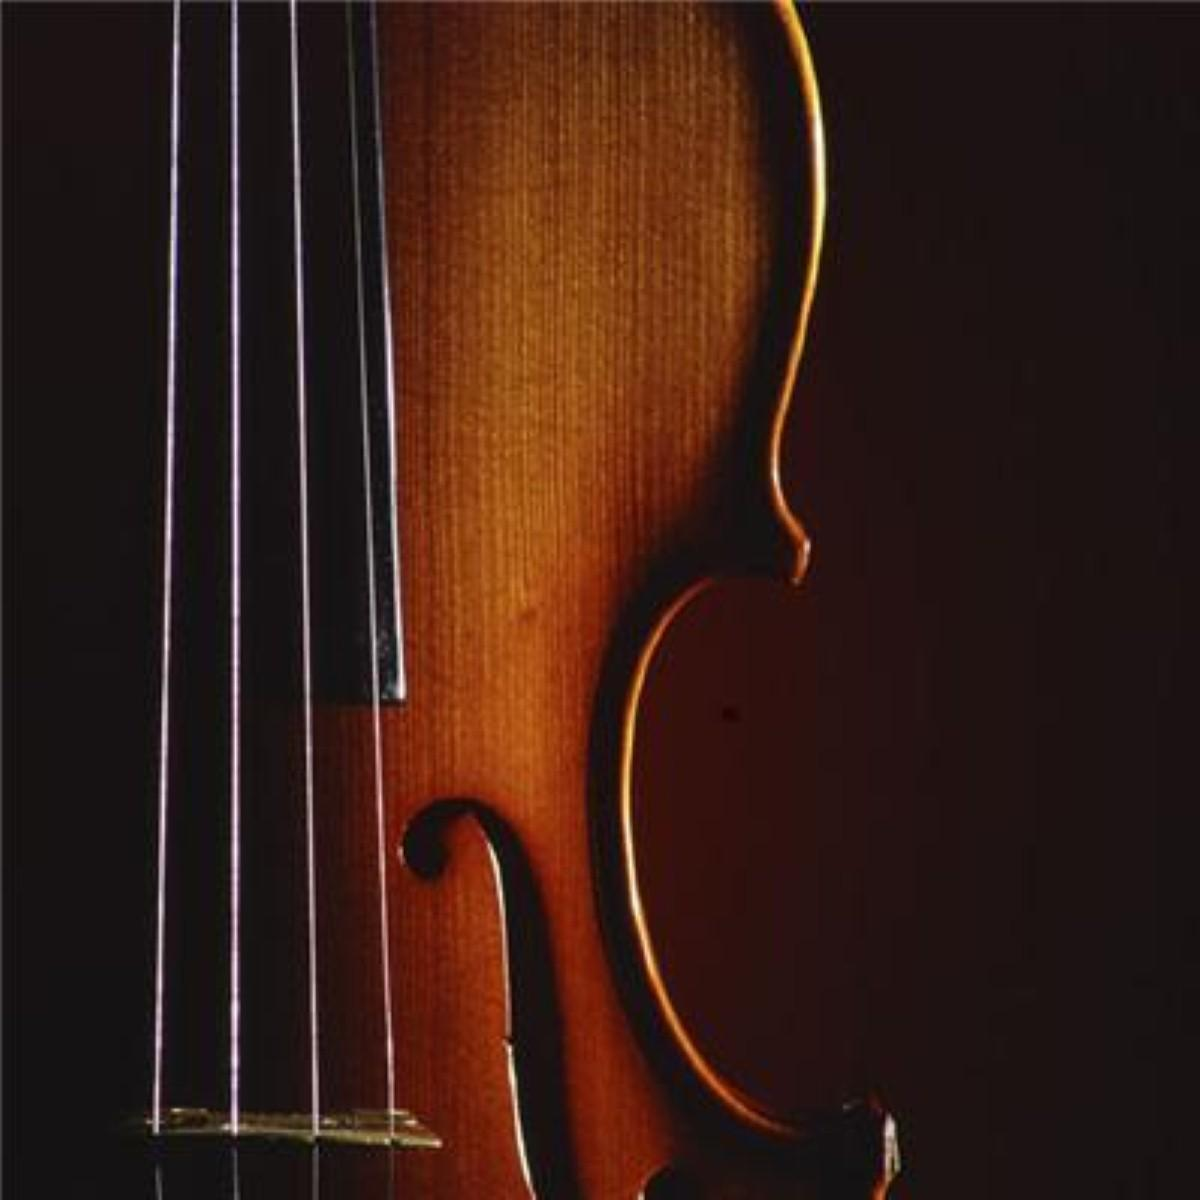 Dementia charity to hold fundraising classical concert